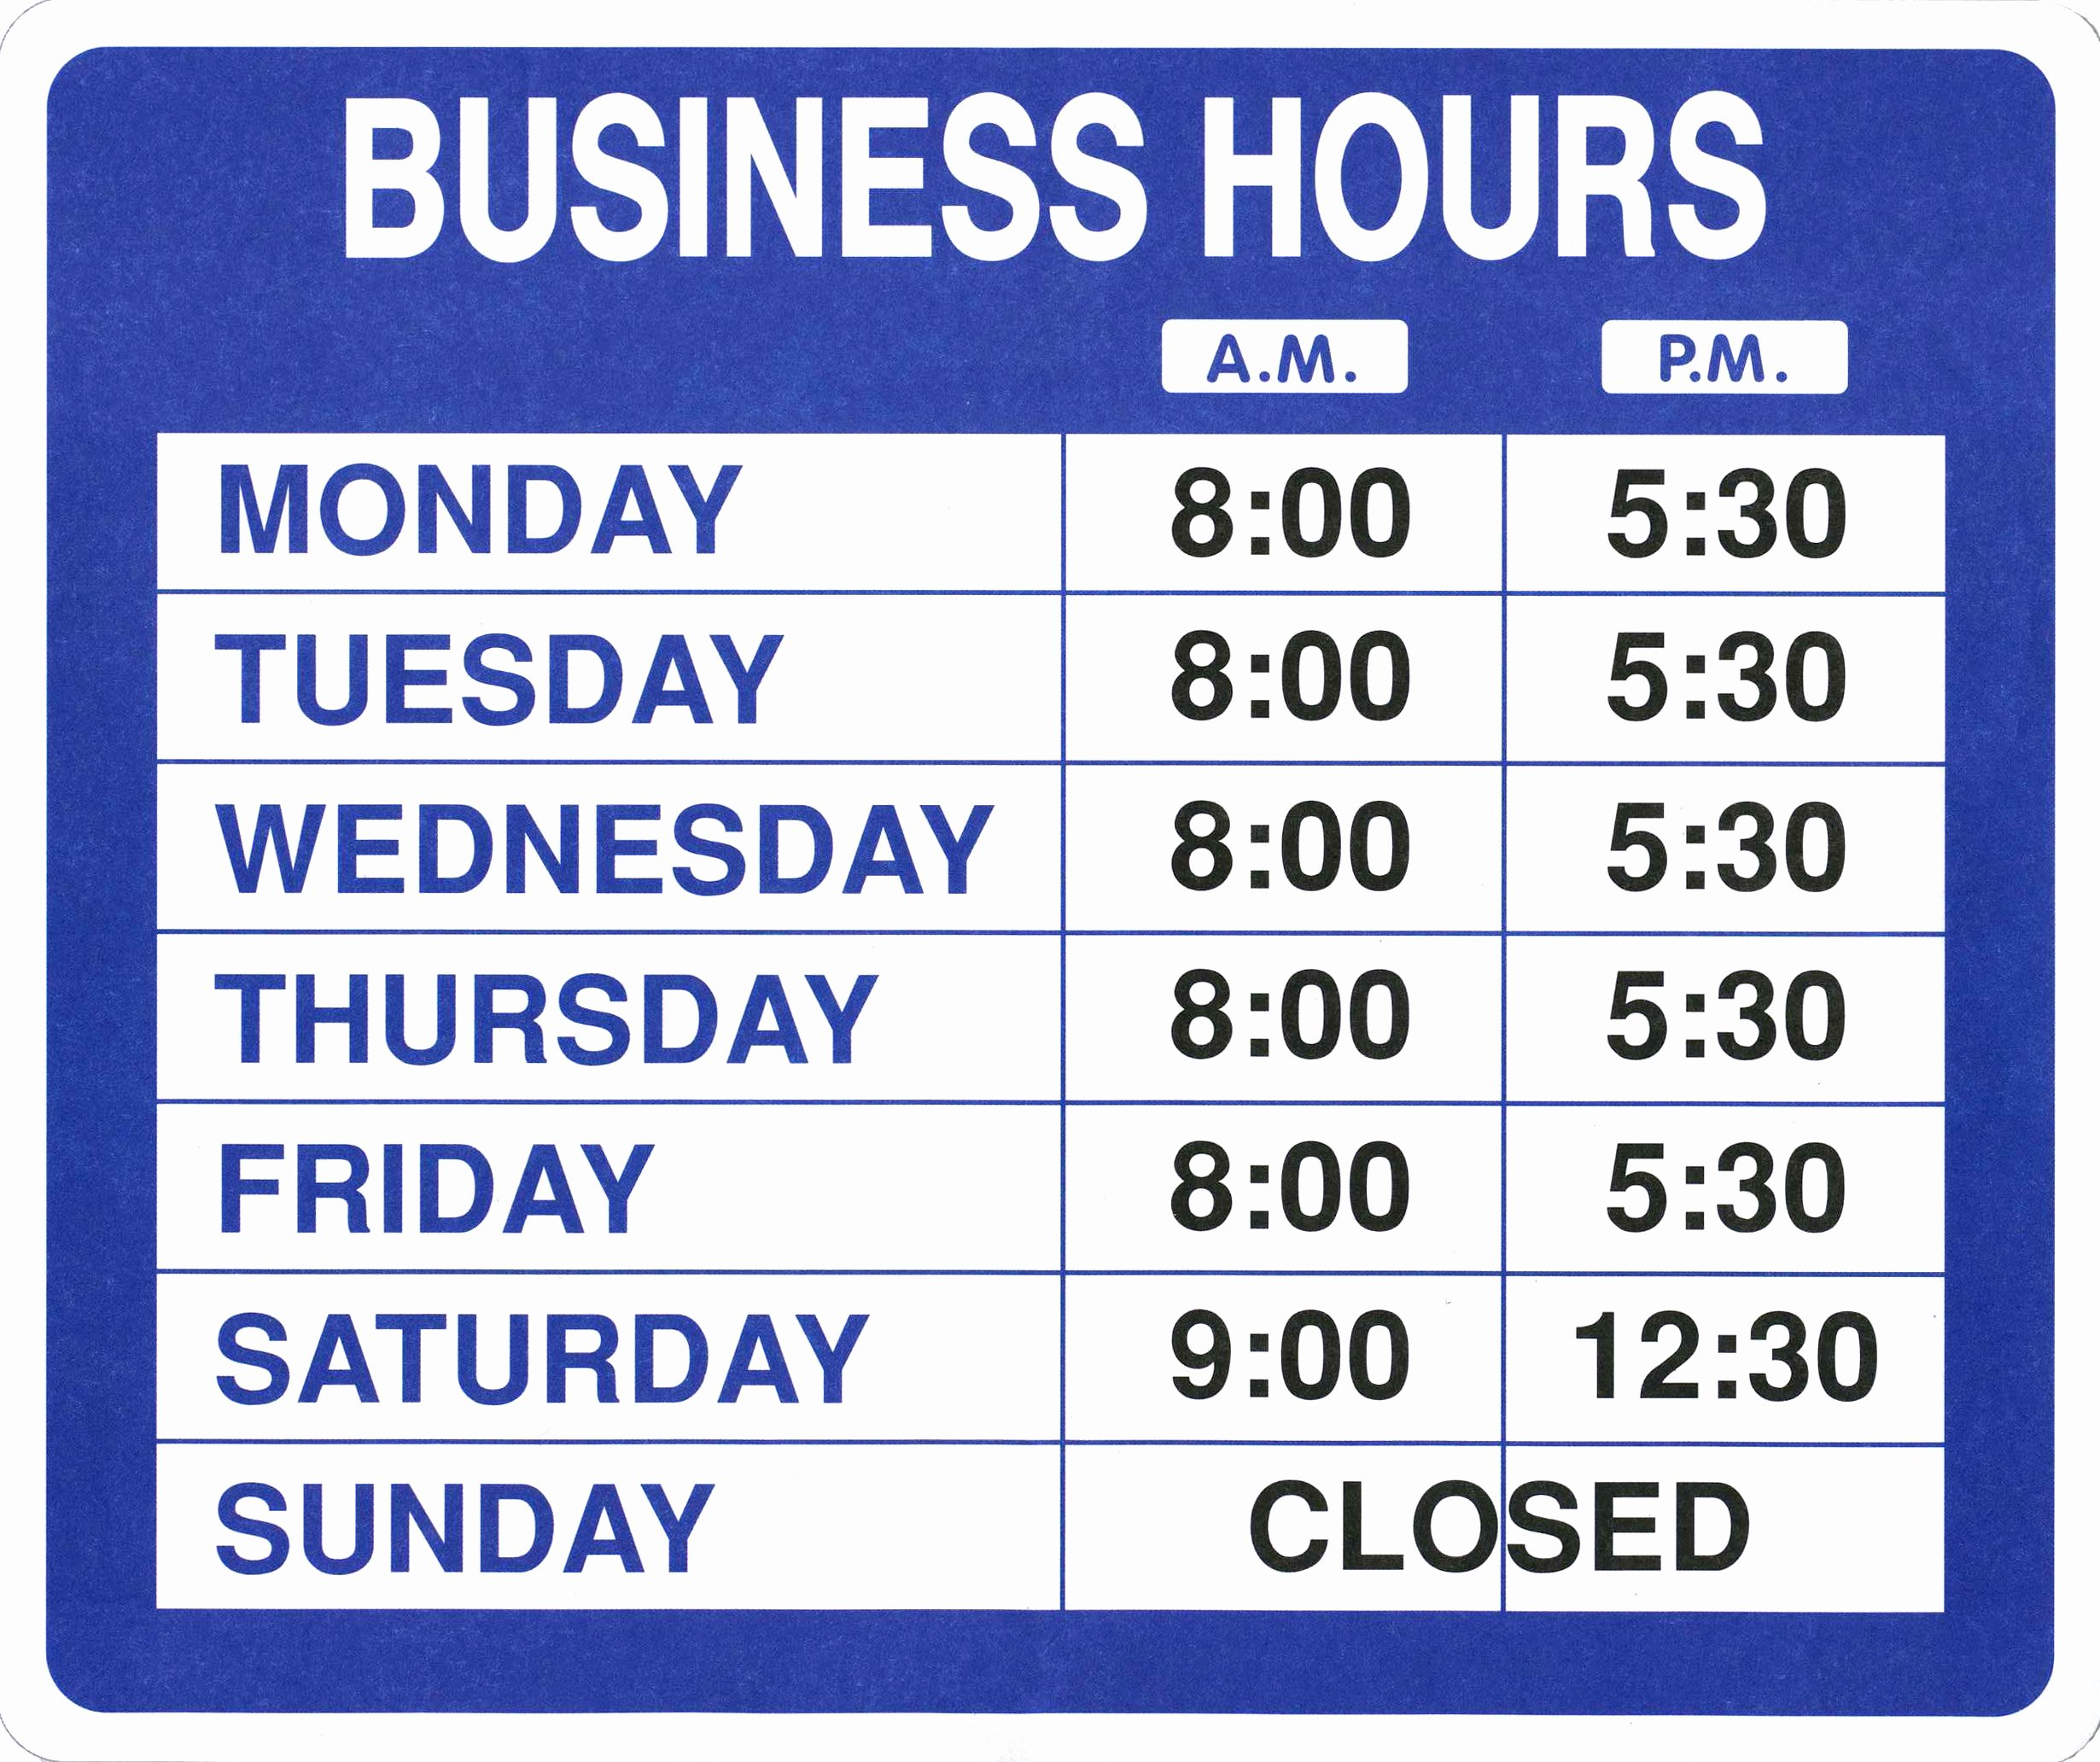 Business Hours Sign Template Free Awesome Garveyproducts Line Shopping for Labelers Taggers